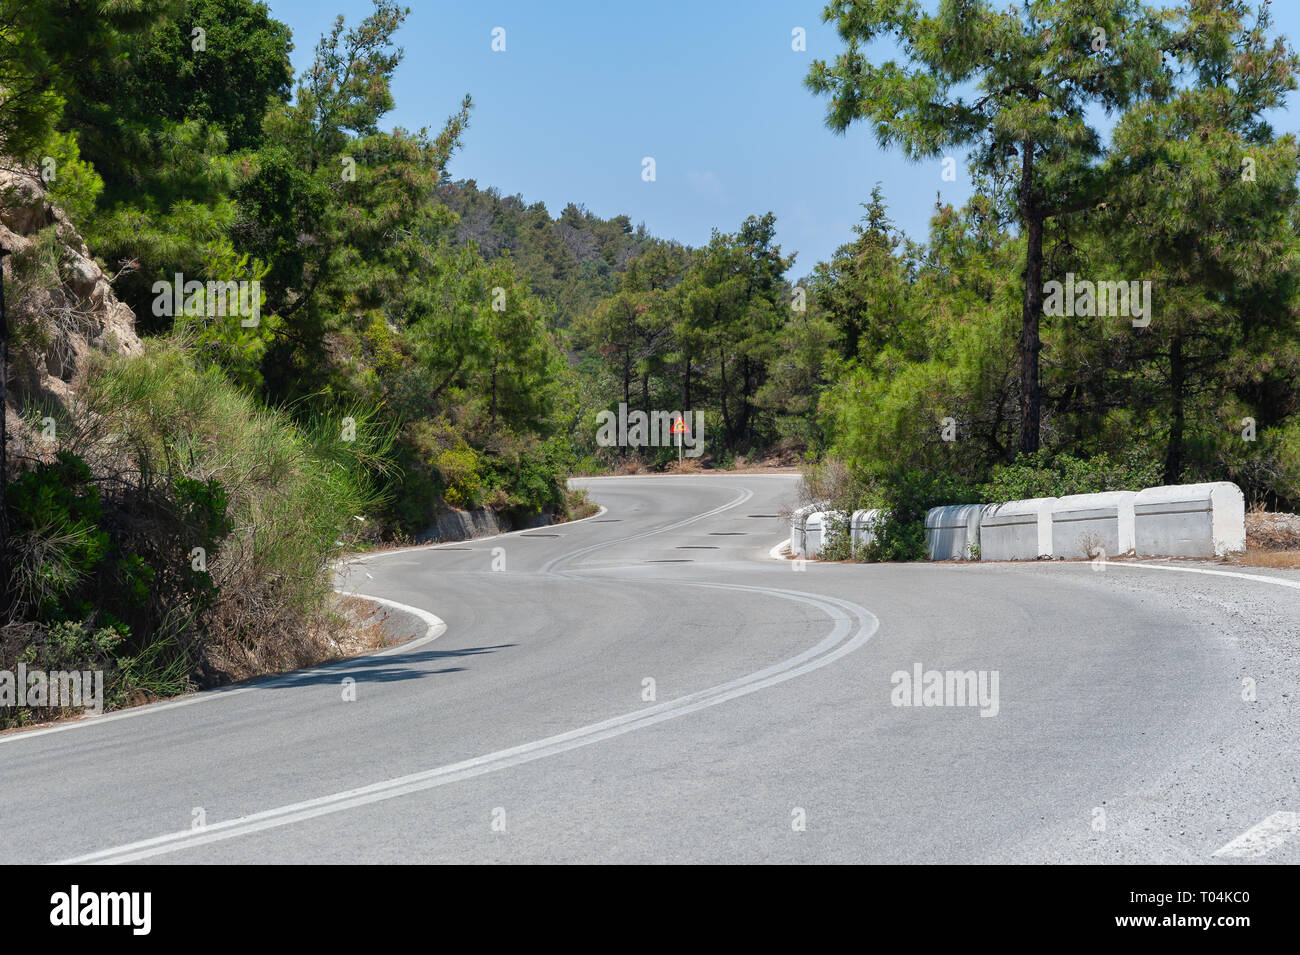 Down a curvy, bendy road. Open road through forest on hillside. Open road. Empty road with no traffic in countryside. Rural landscape. Greece. - Stock Image